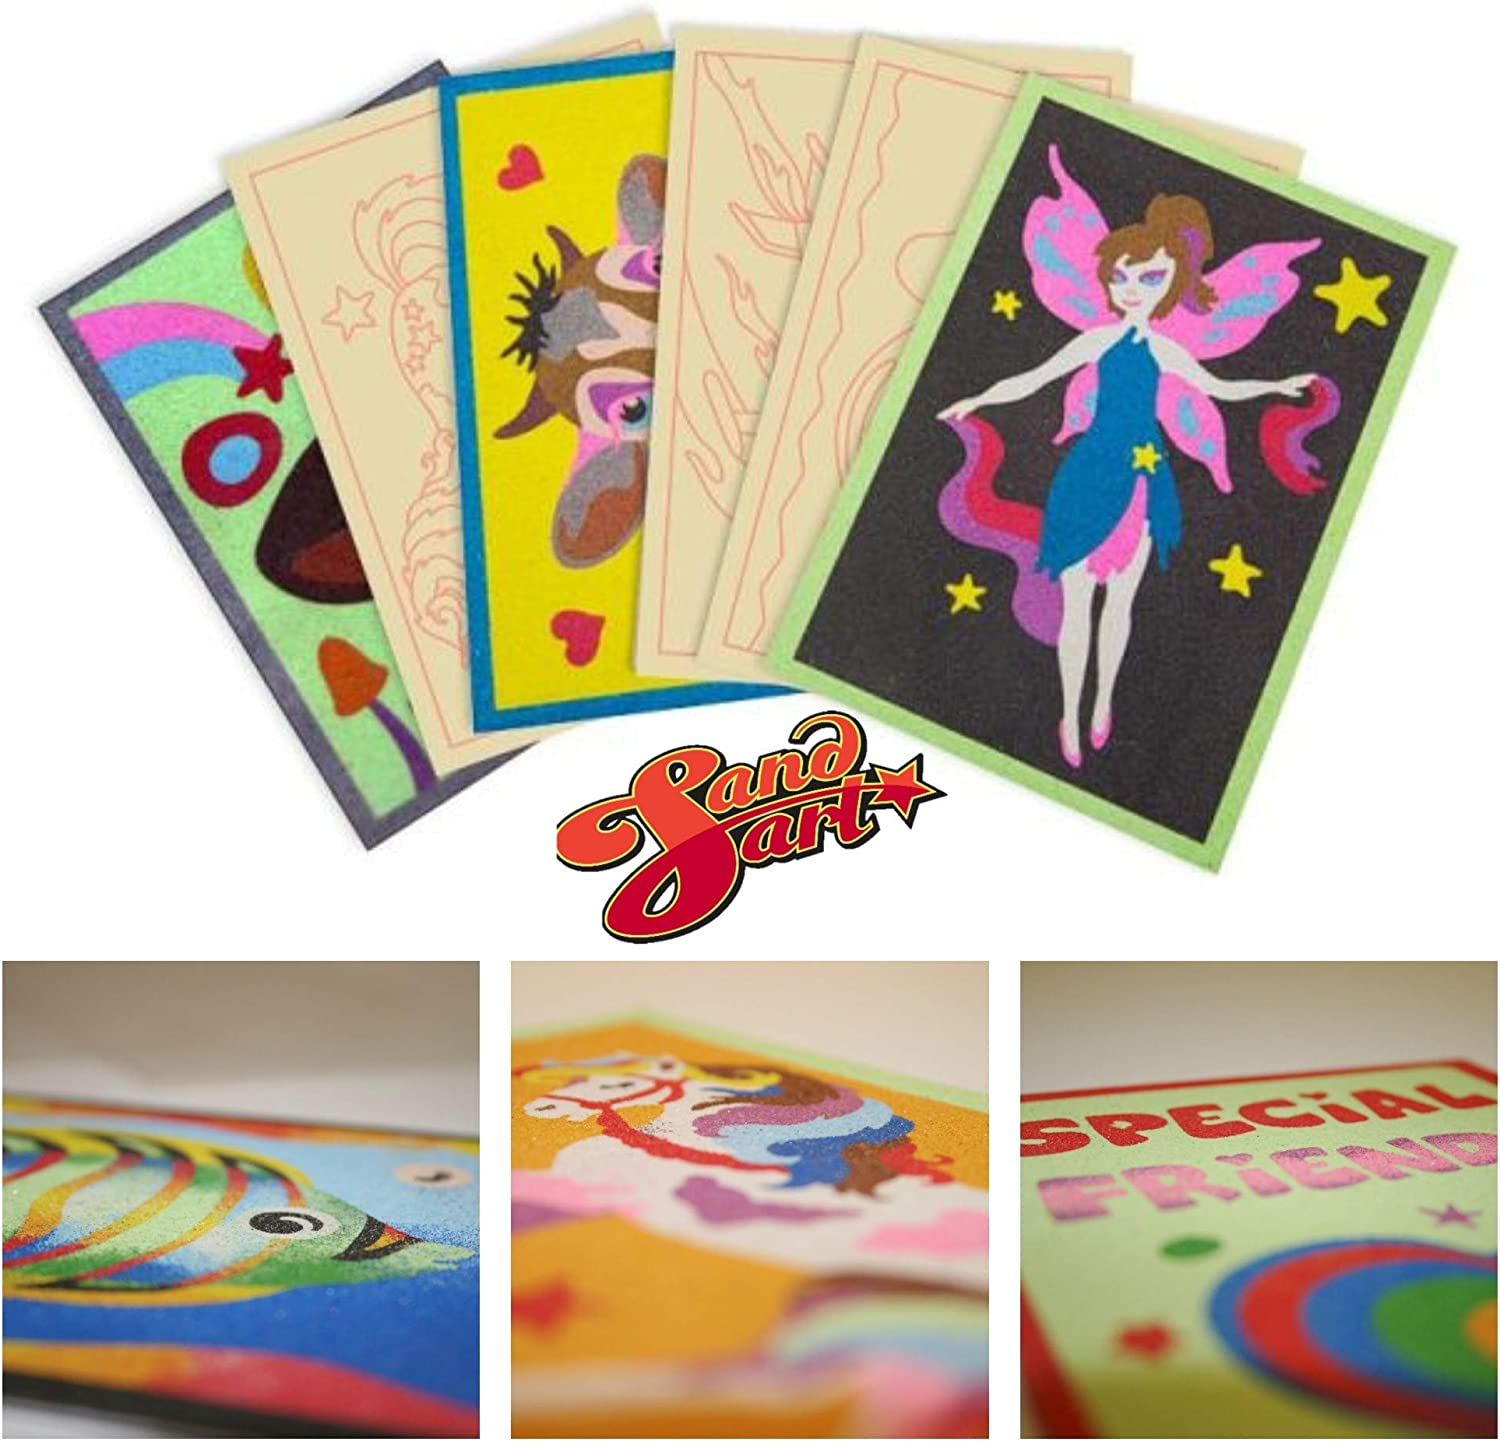 Girls Sand Art Pictures kids activity Decorate and create 6 Quality Picture cards Additional Picture cards for our Sand Art Kits Arts and Crafts for kids